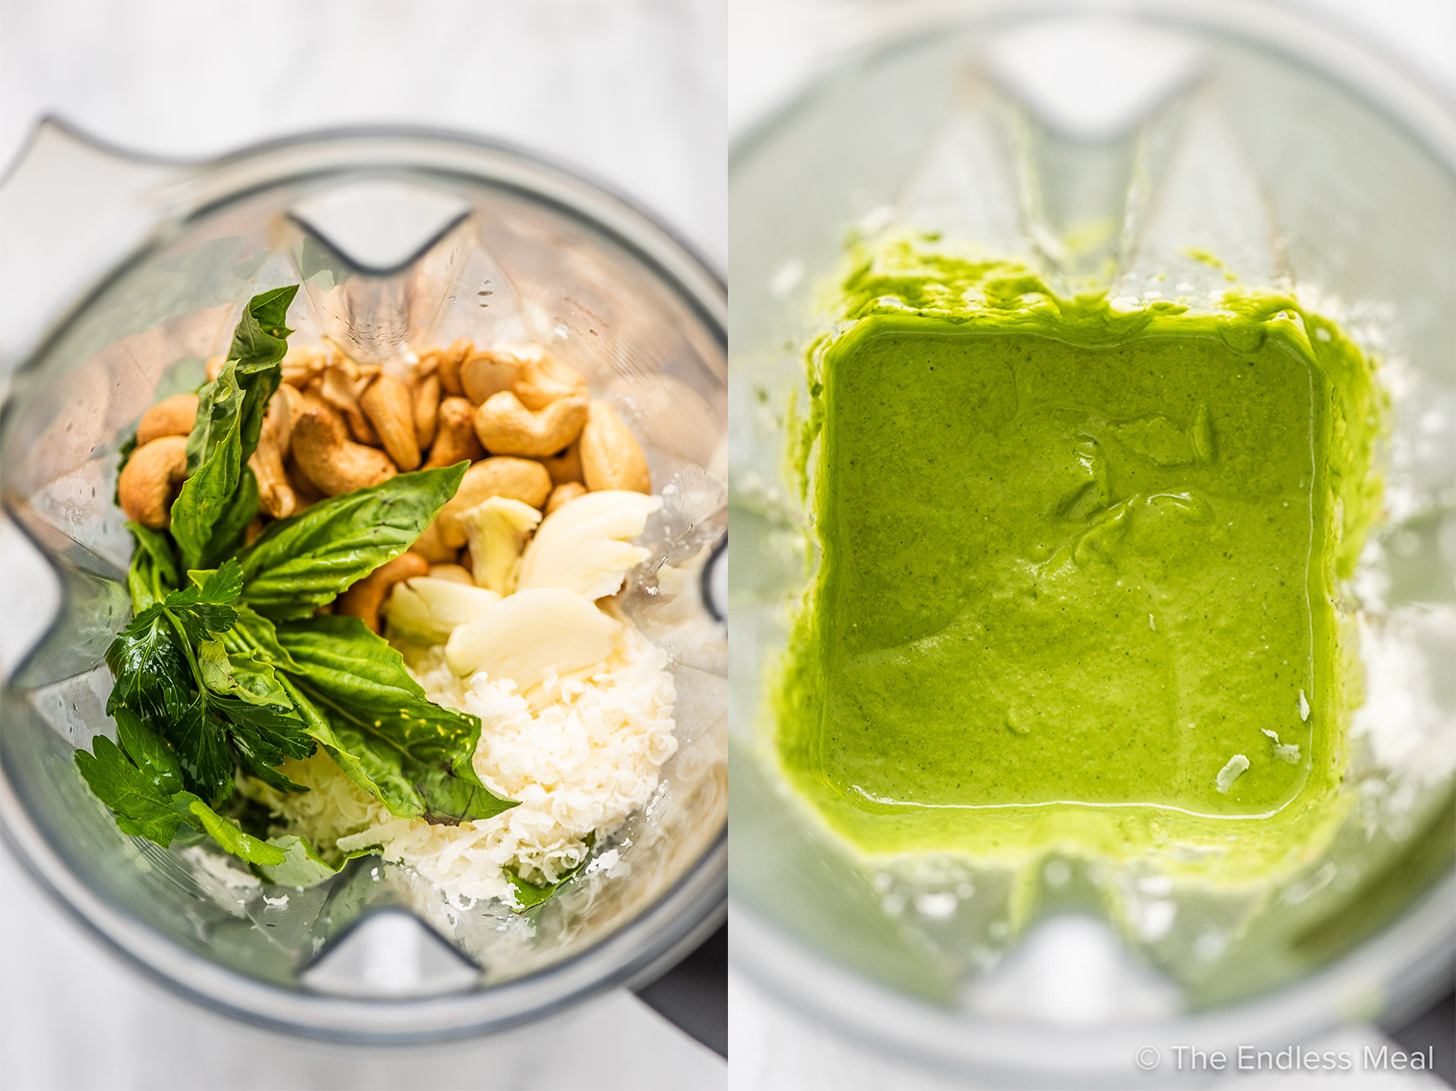 2 pictures showing how to make creamy pesto sauce.